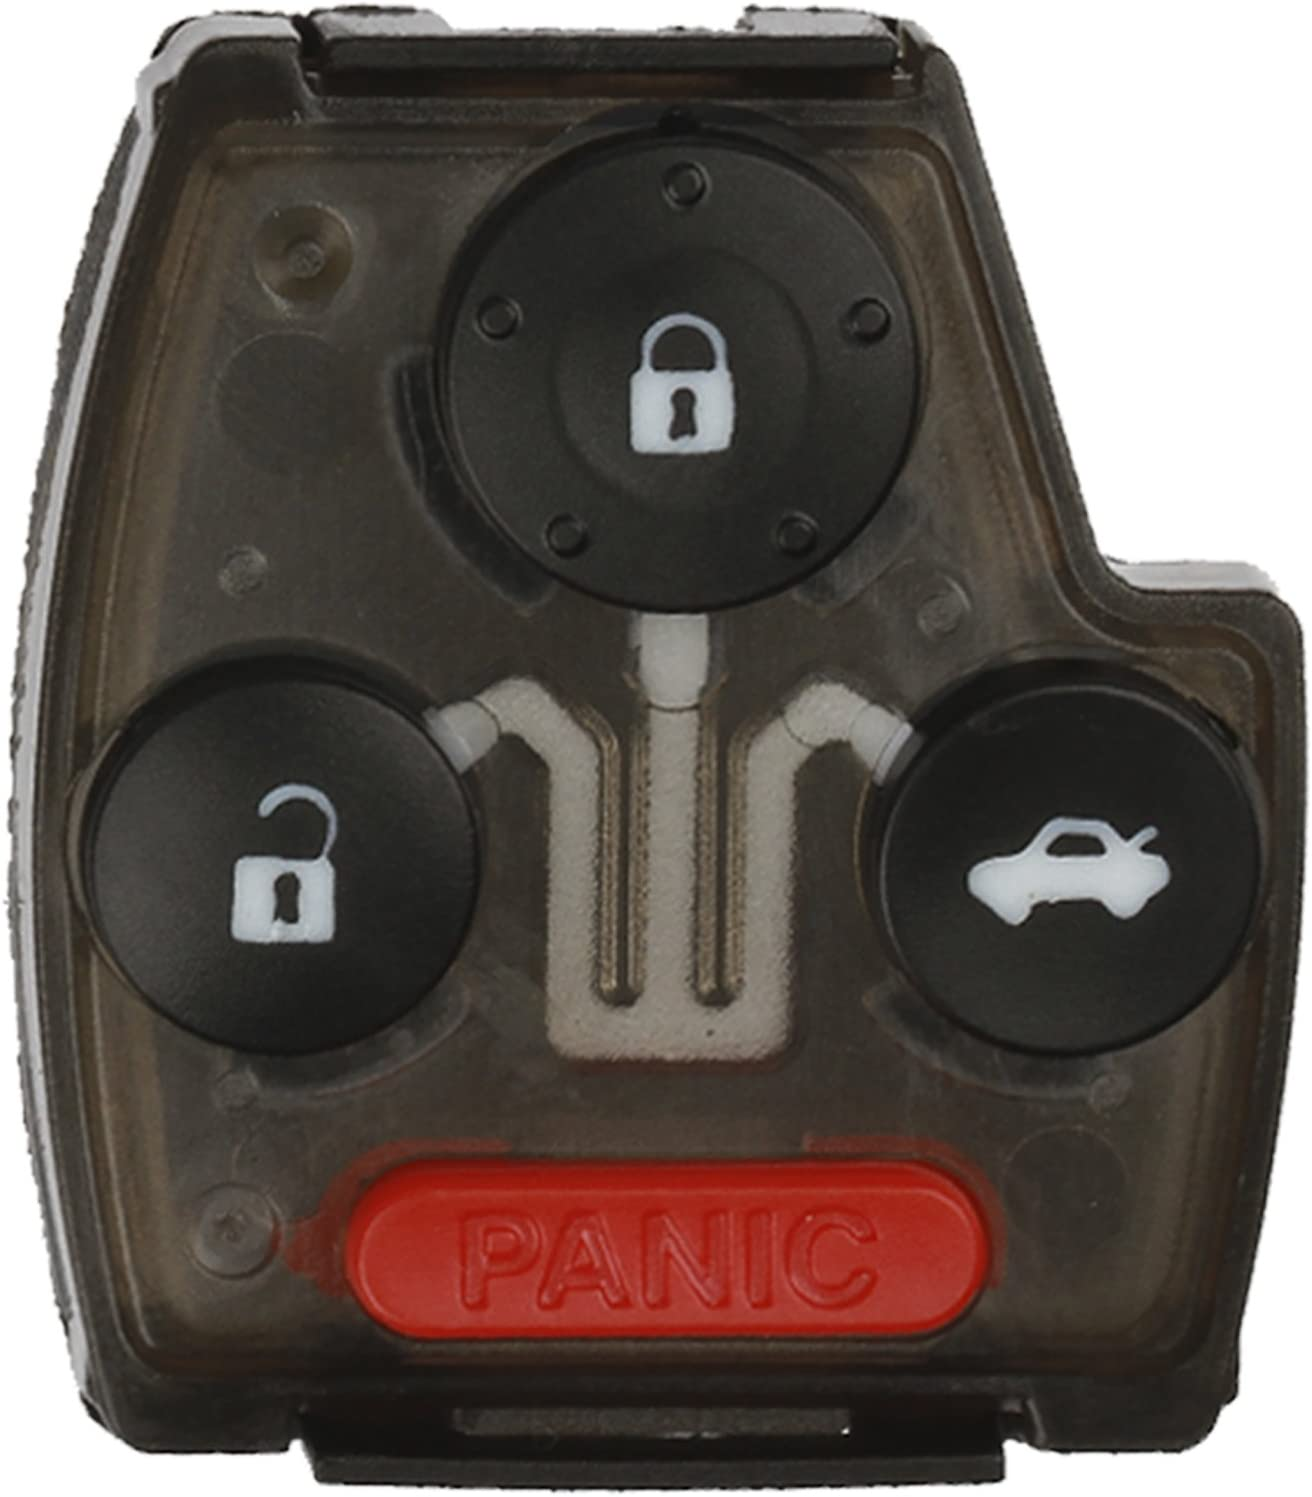 KeylessOption Keyless Remote Uncut Key Fob Shell Button Pad With Chip Slot For OUCG8D-380H-A